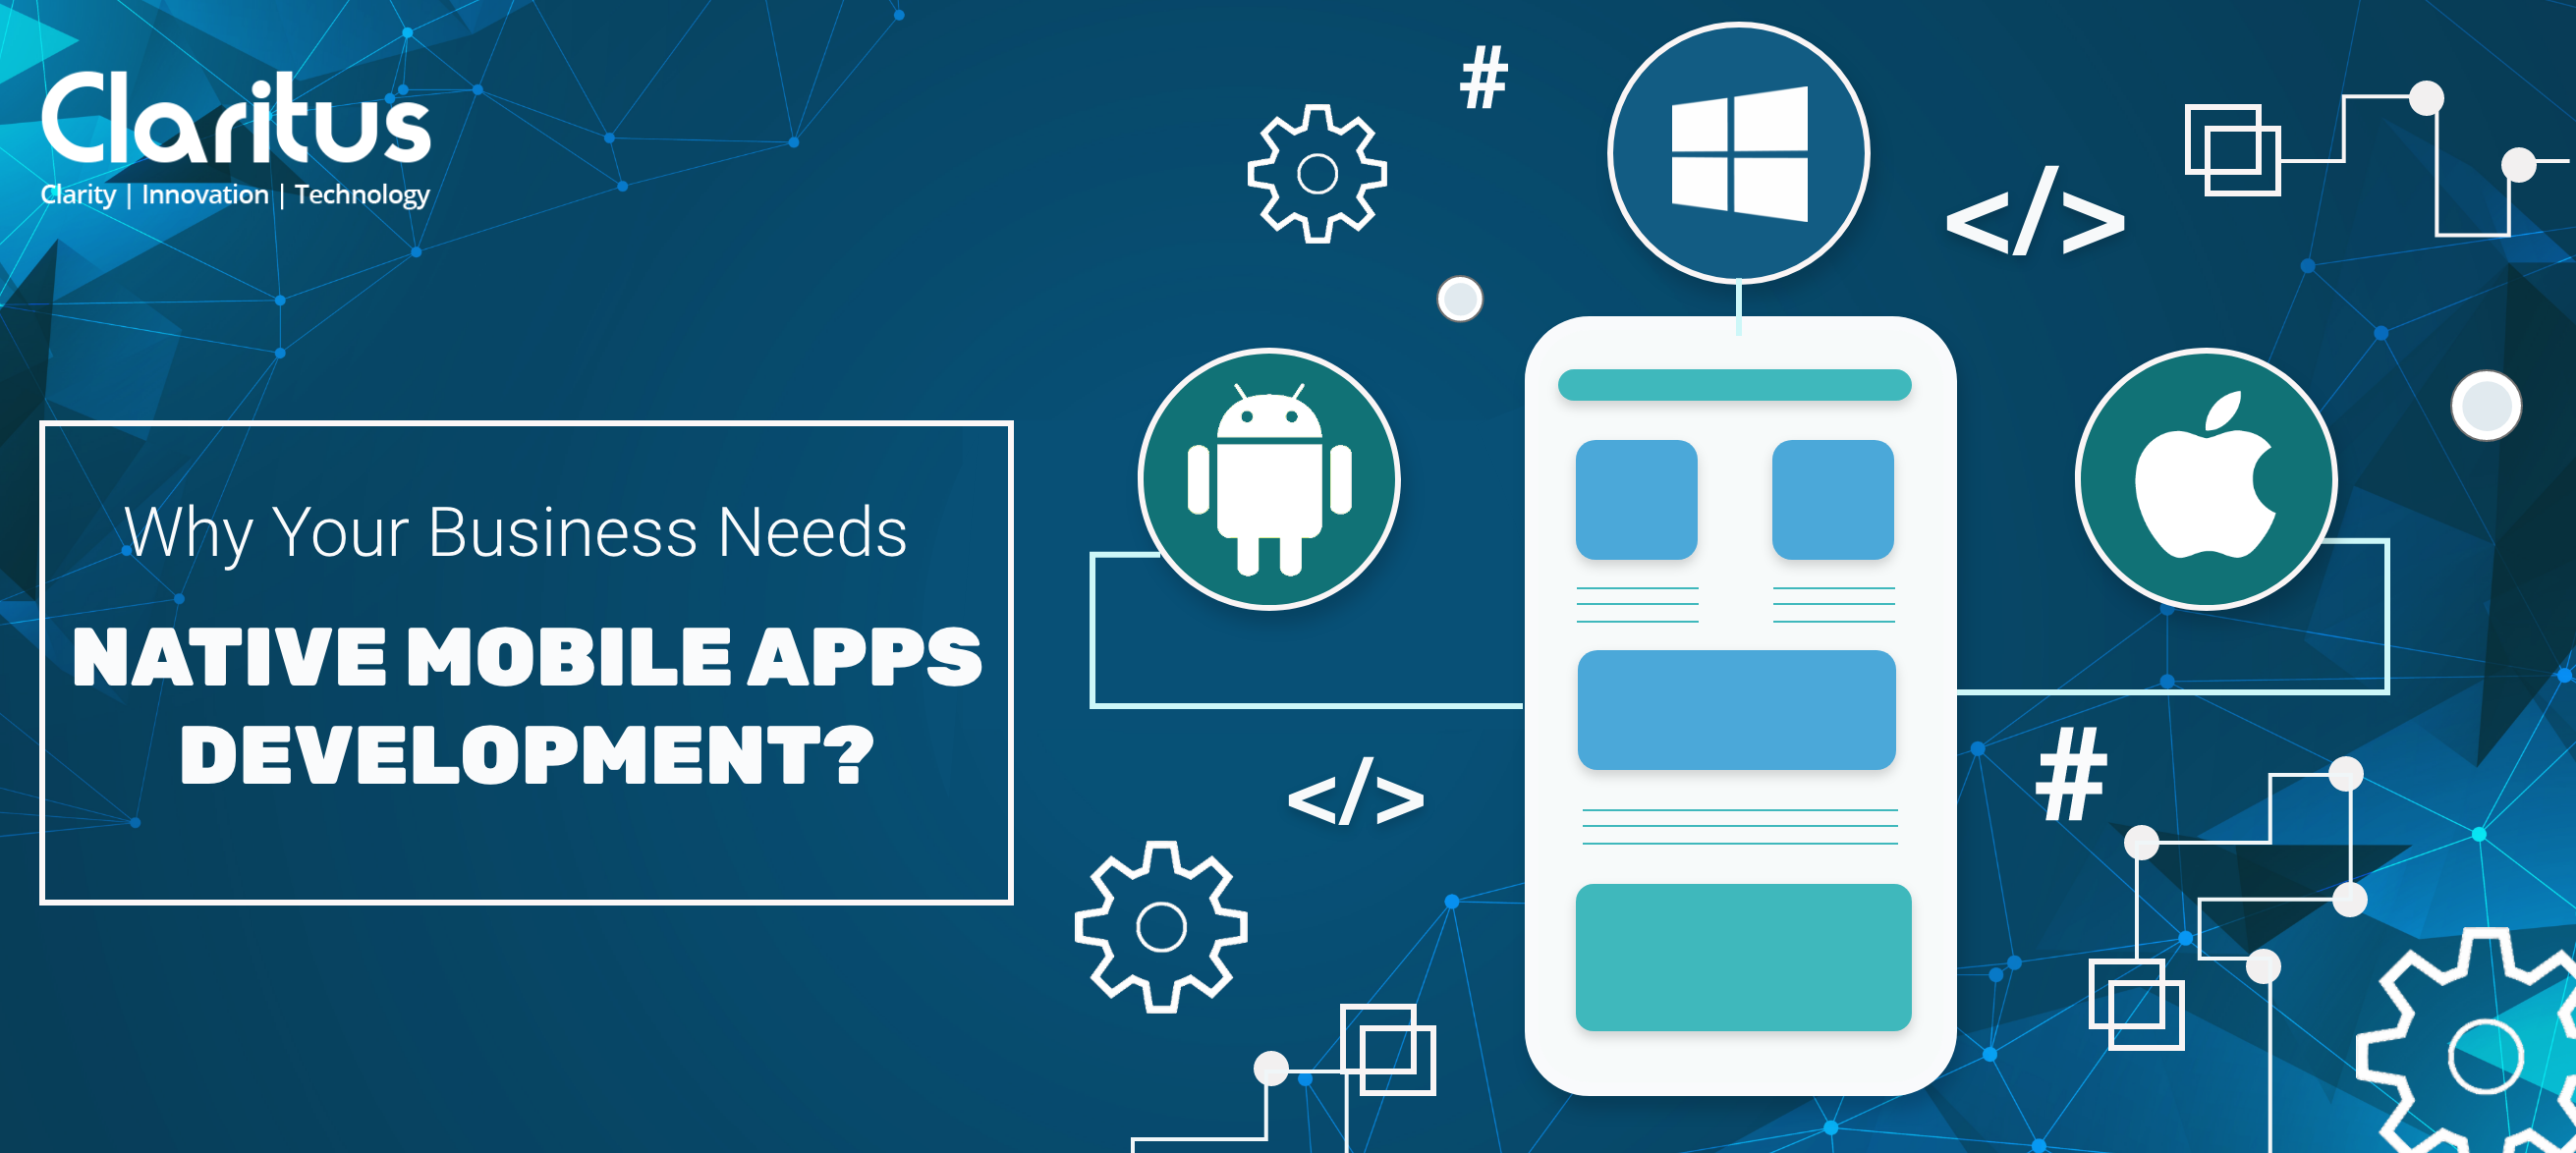 Why Your Business Needs Native Mobile Apps Development?